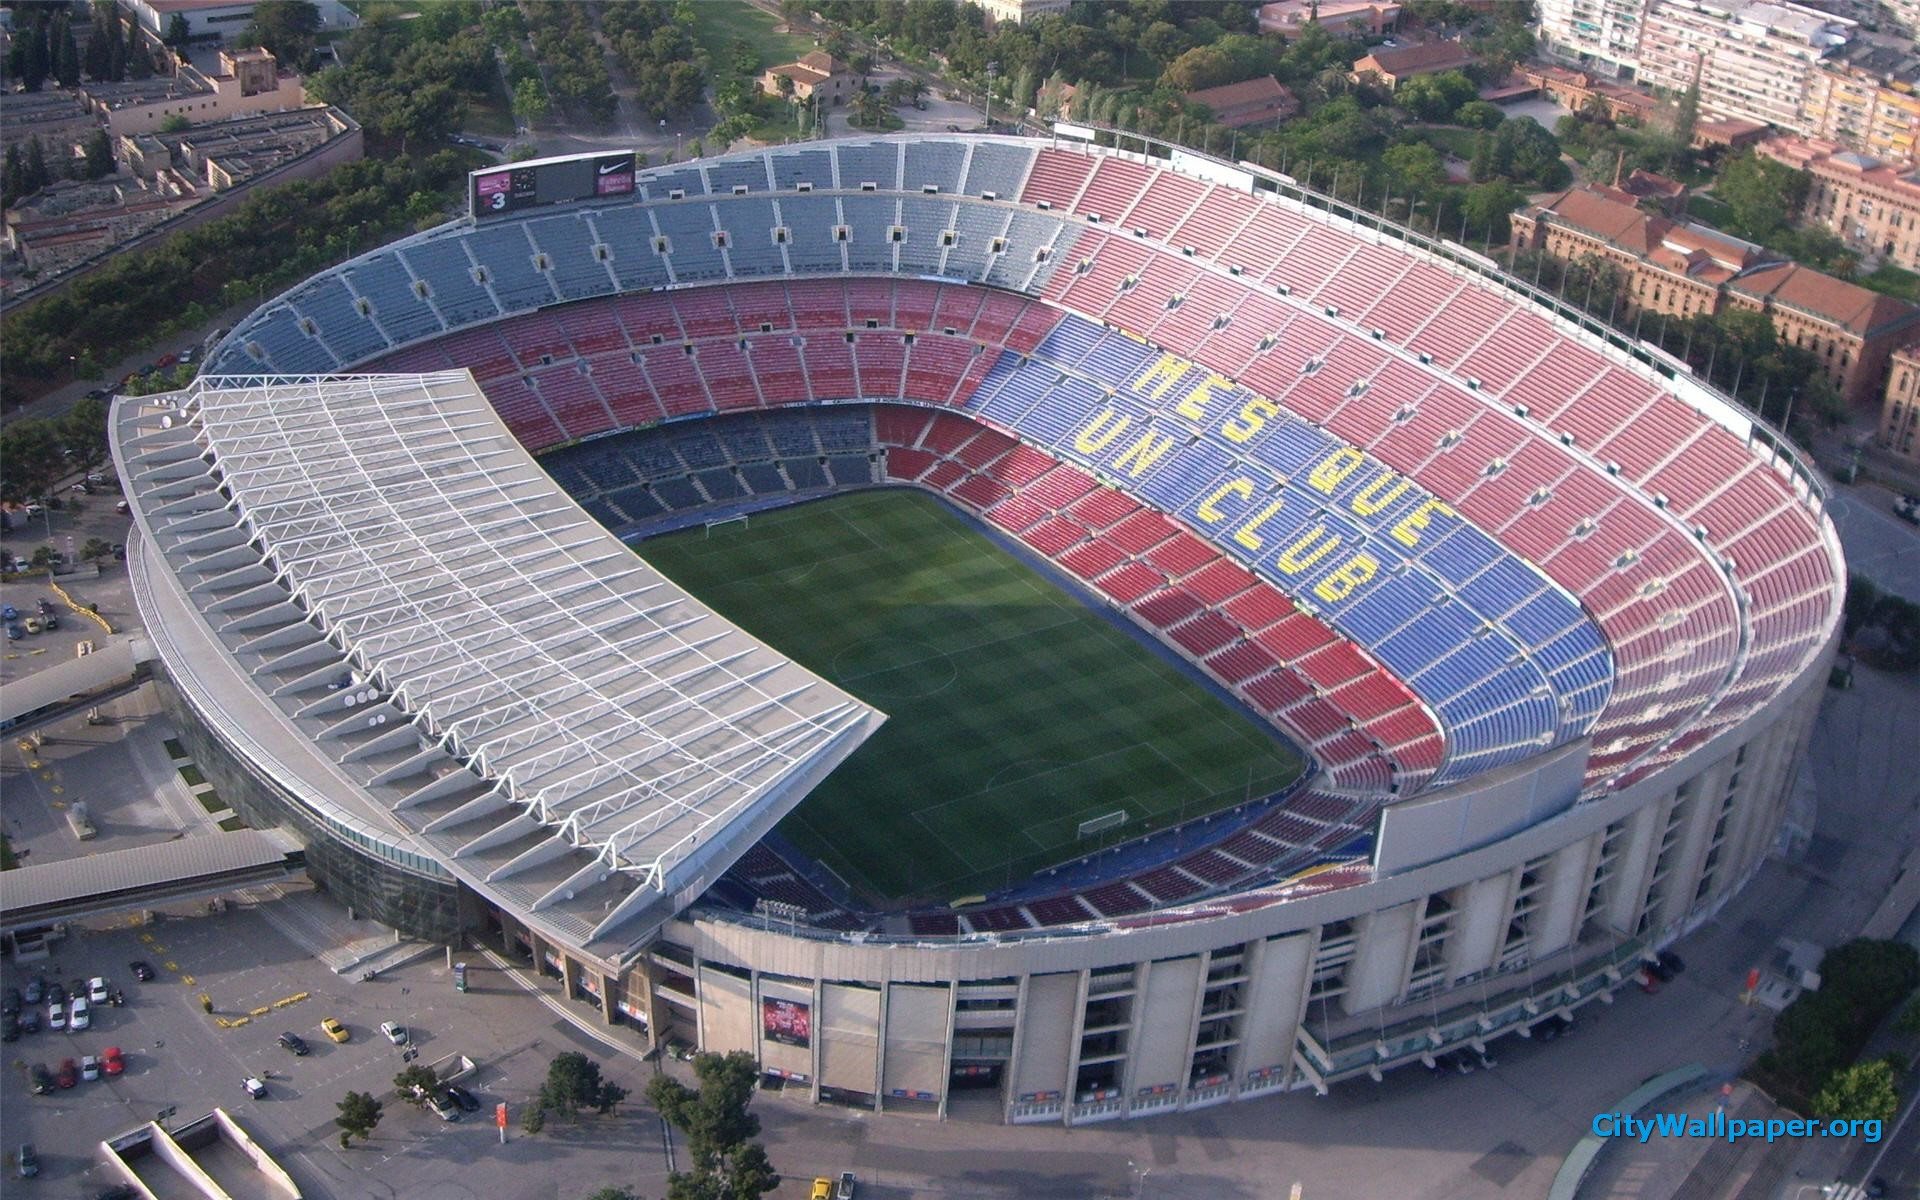 camp-nou-desktop-wallpaper-1920x1200